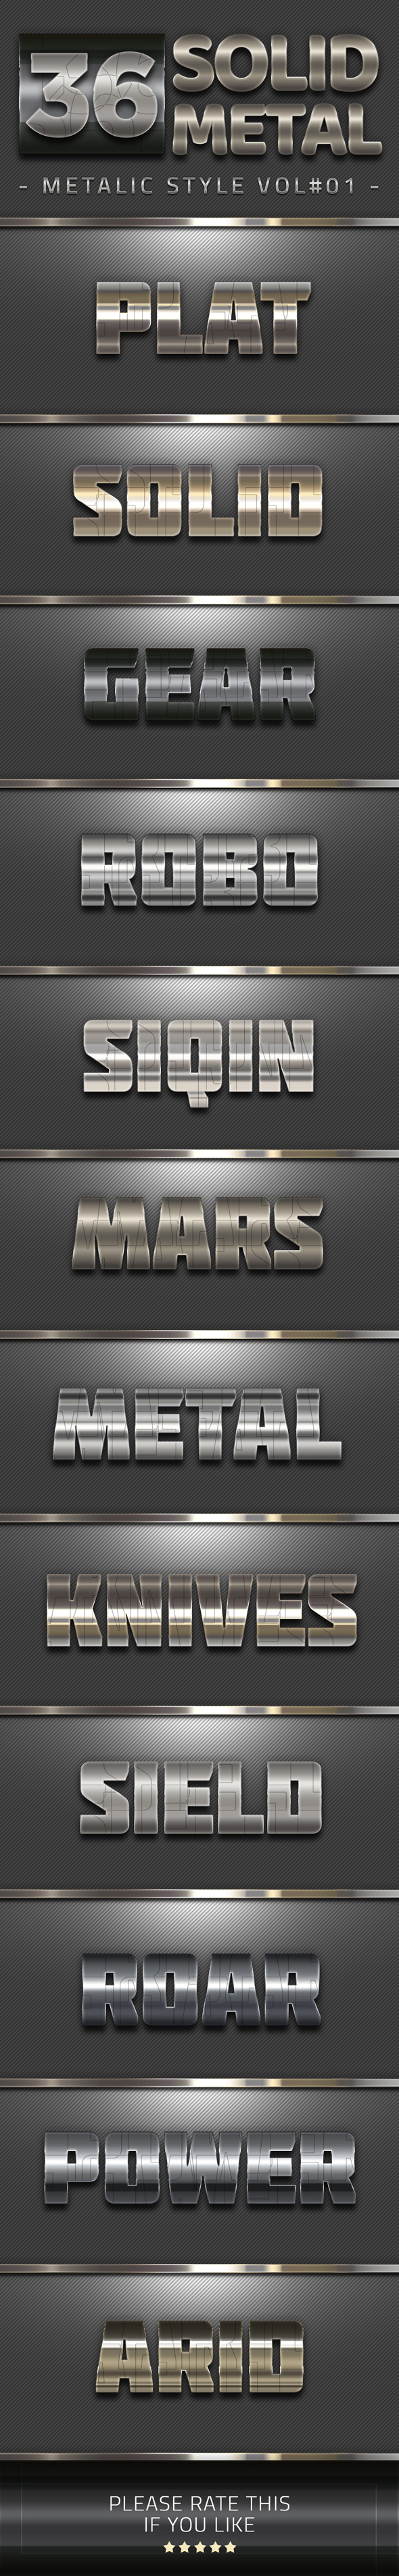 36 Solid Metal Text Effect V01 - Text Effects Styles